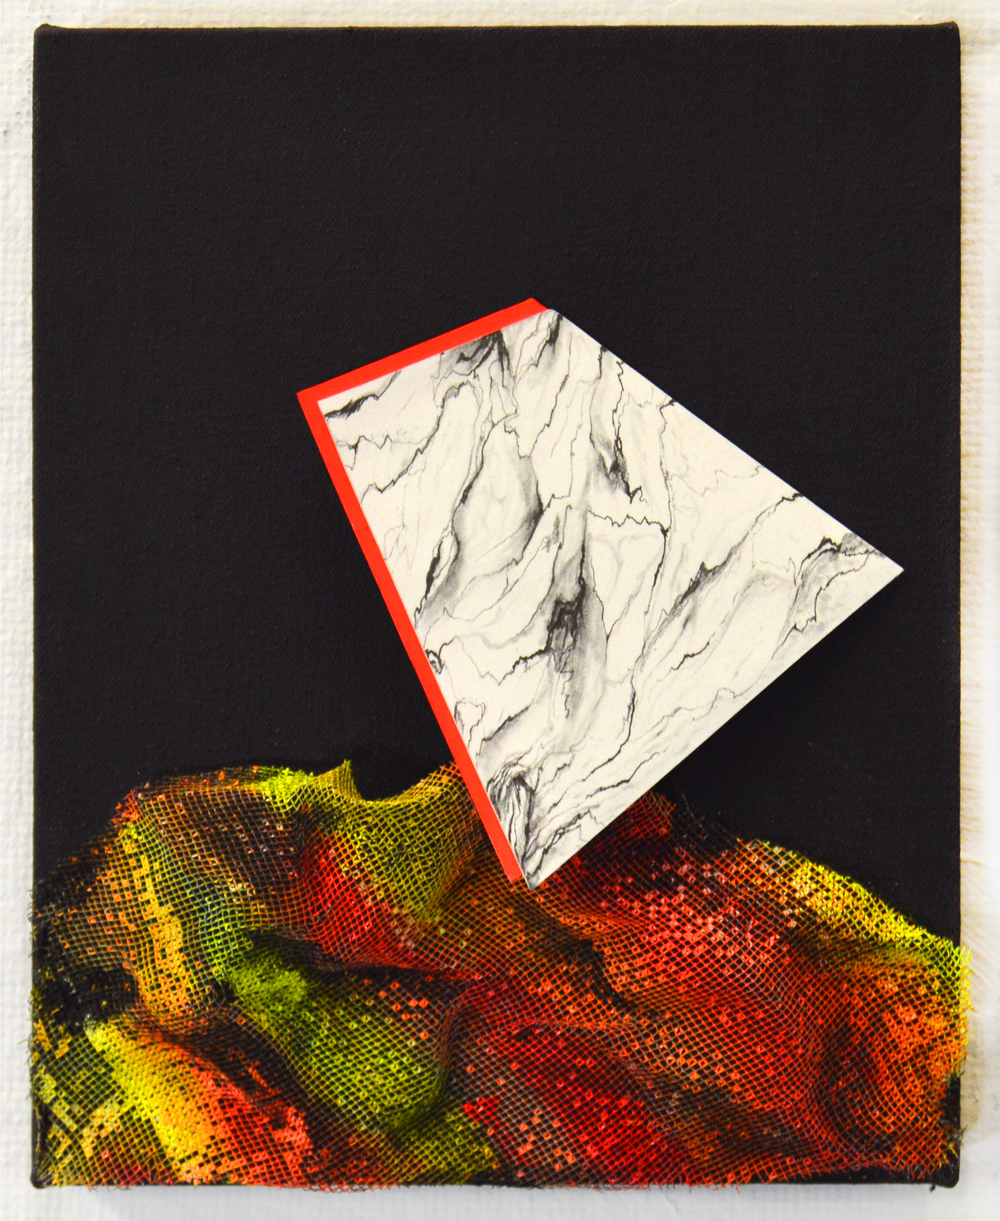 Untitled, Graphite, gouache, cut paper and wire mesh on canvas, 2015